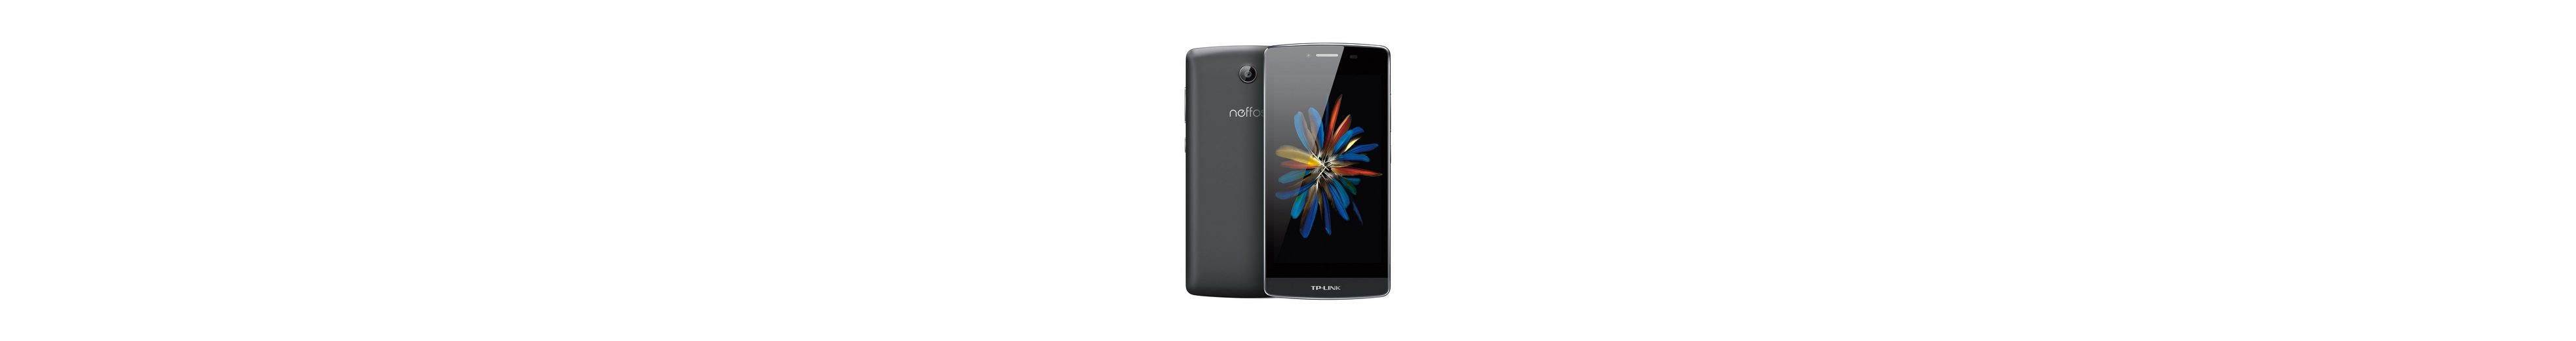 """TP-LINK Neffos C5 inkl. Powerbank »Quad Core, 12,7cm (5""""), 16GB, 2GB, Android 5.1«"""